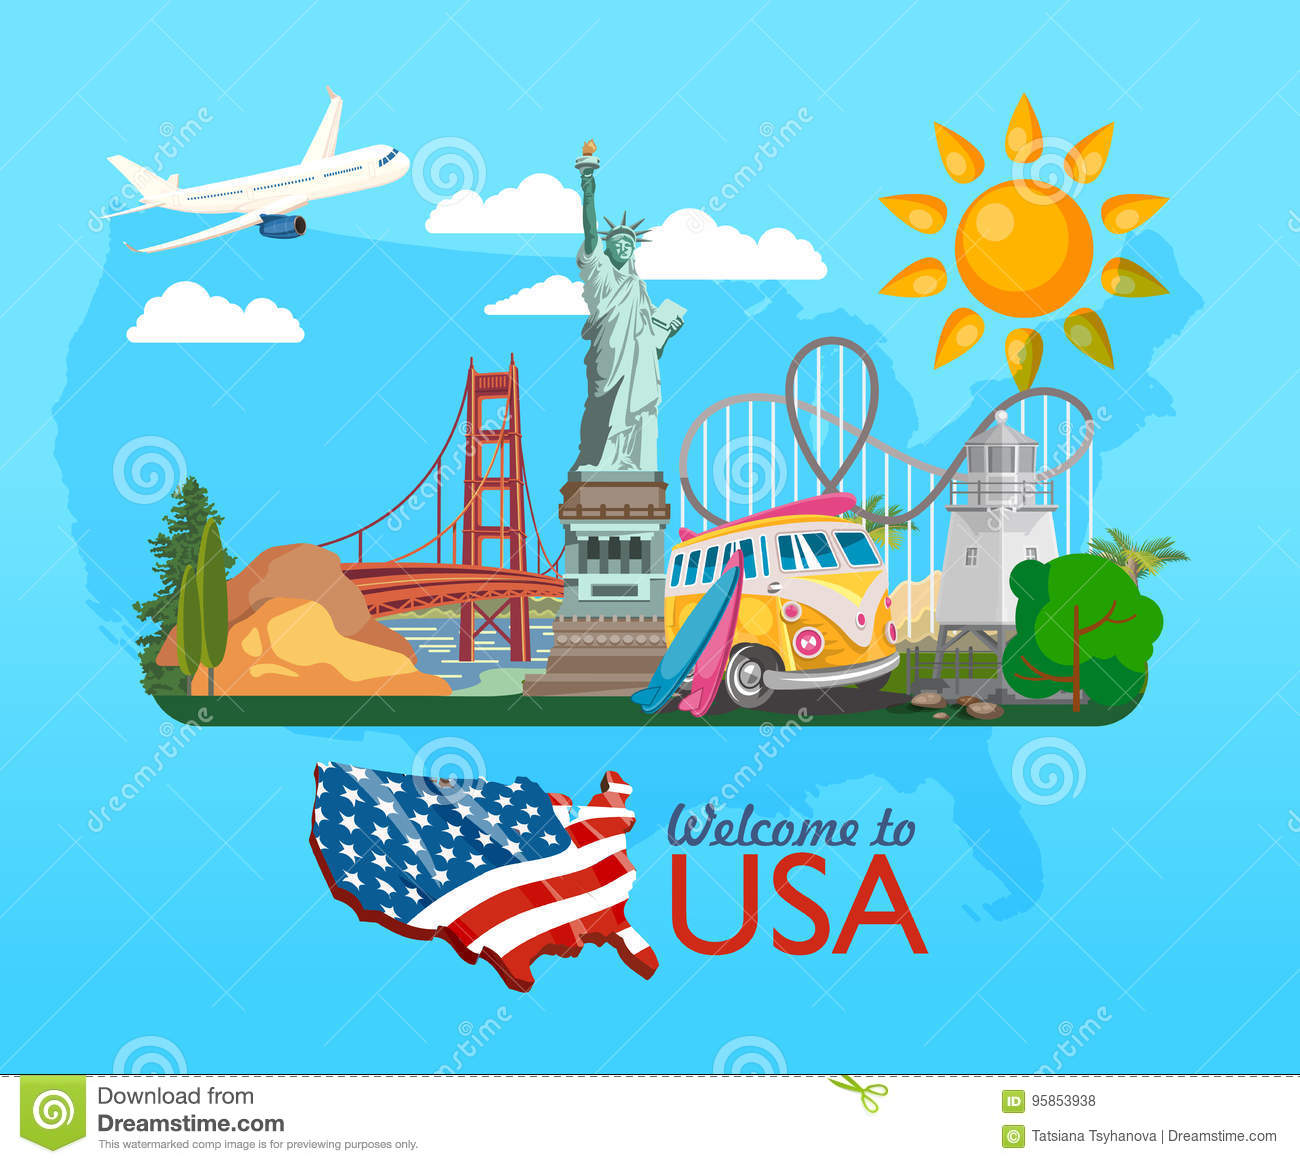 Traveling To The United States: Welcome To USA. United States Of America Poster With